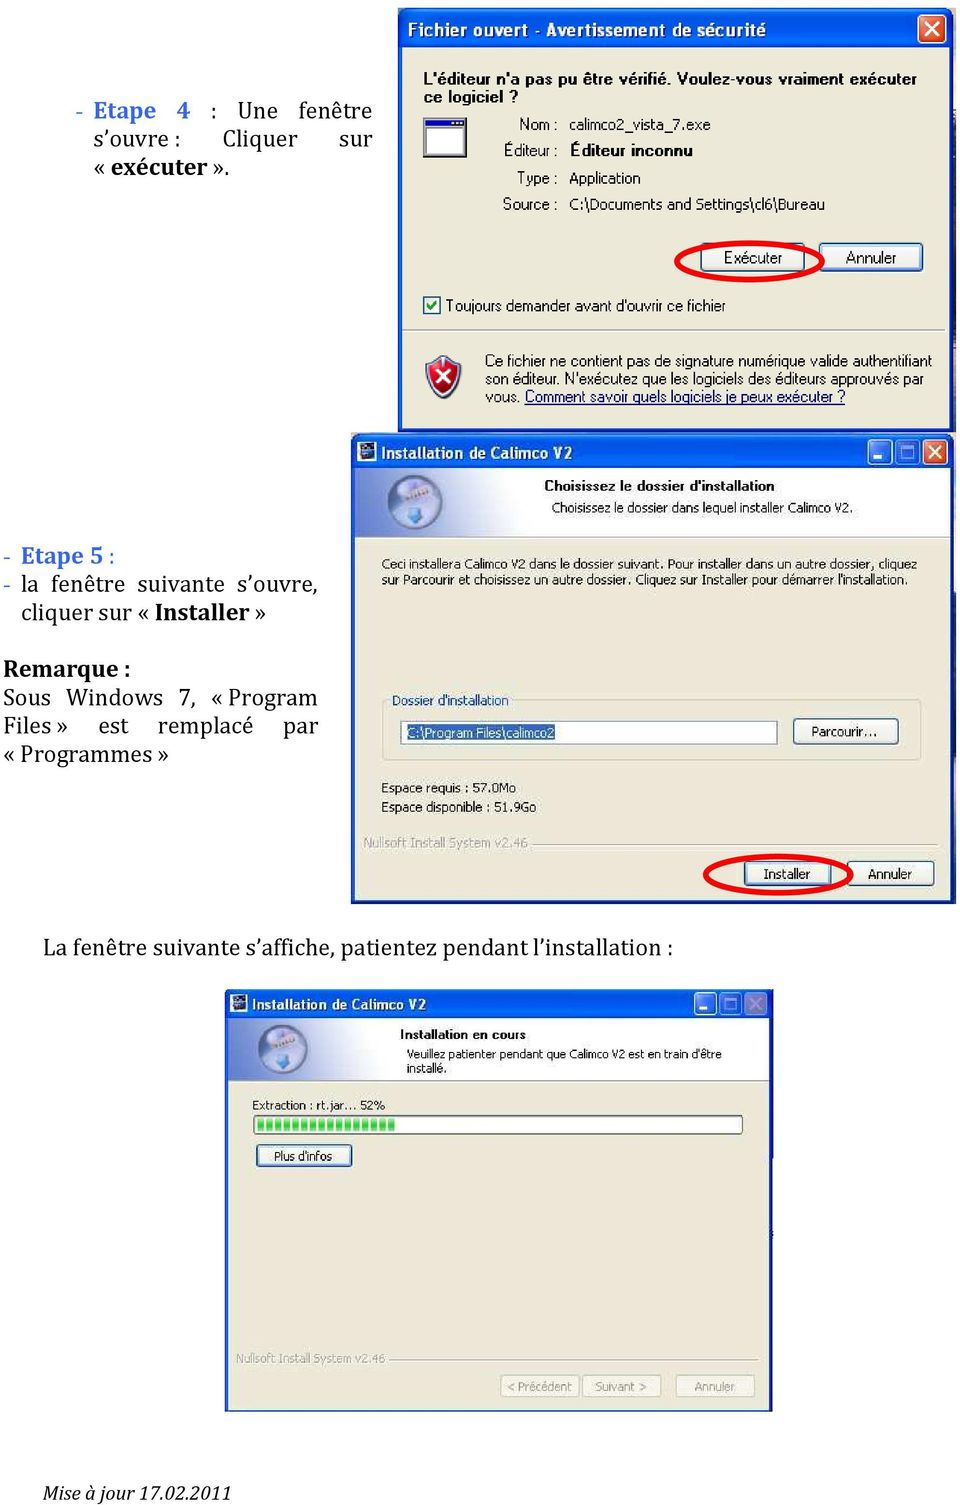 «Installer» Remarque : Sous Windows 7, «Program Files» est